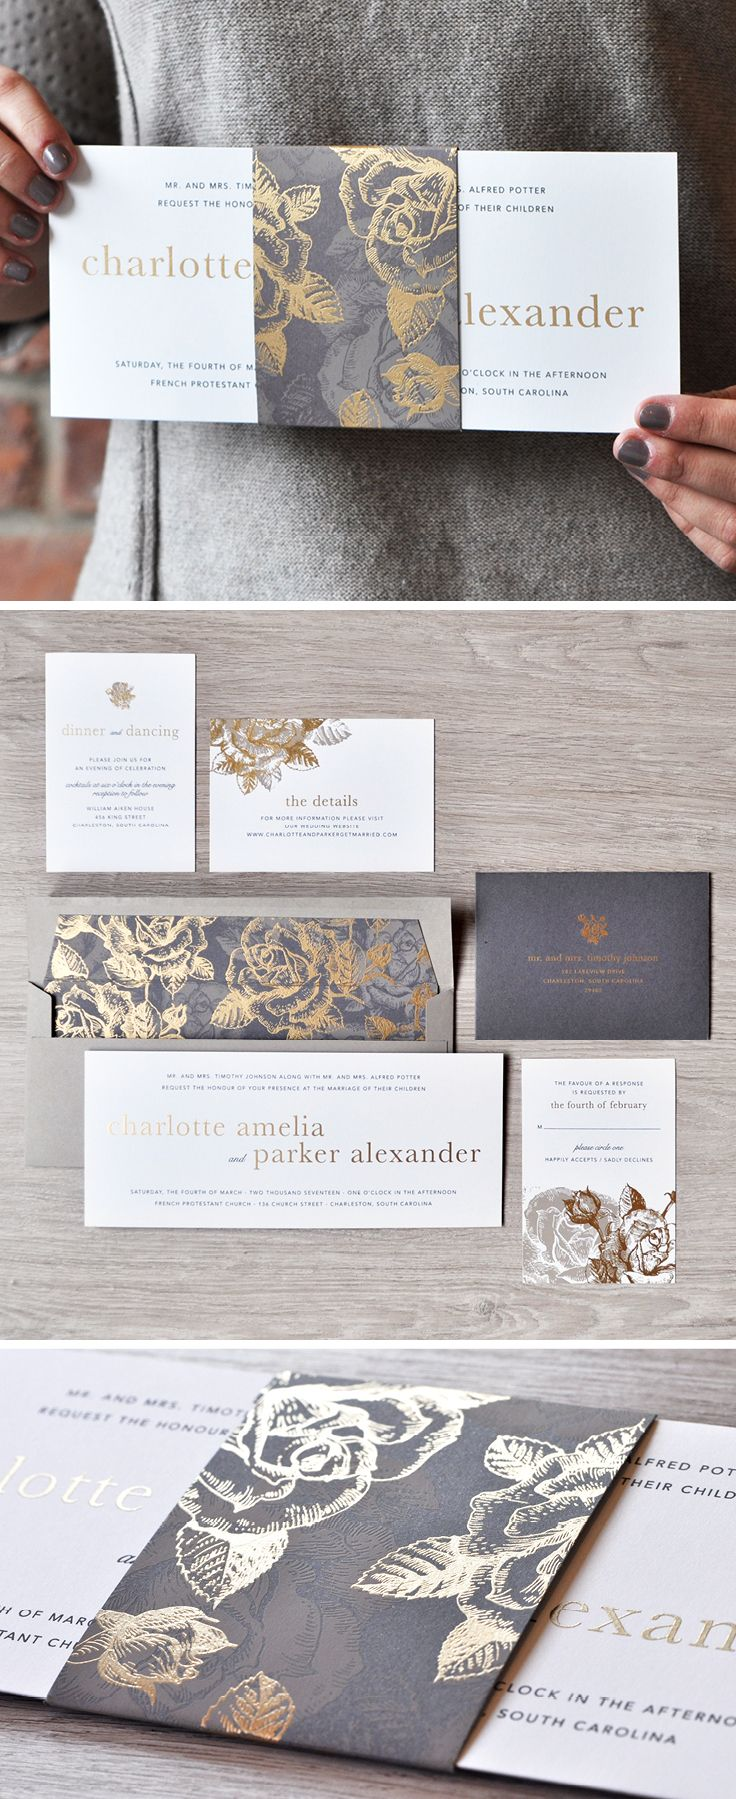 A stunning gold and grey wedding invitation design from Engaging Papers. What do we love most? The floral pattern and belly band!   http://engagingpapers.com/shop/charlotteinvitation/